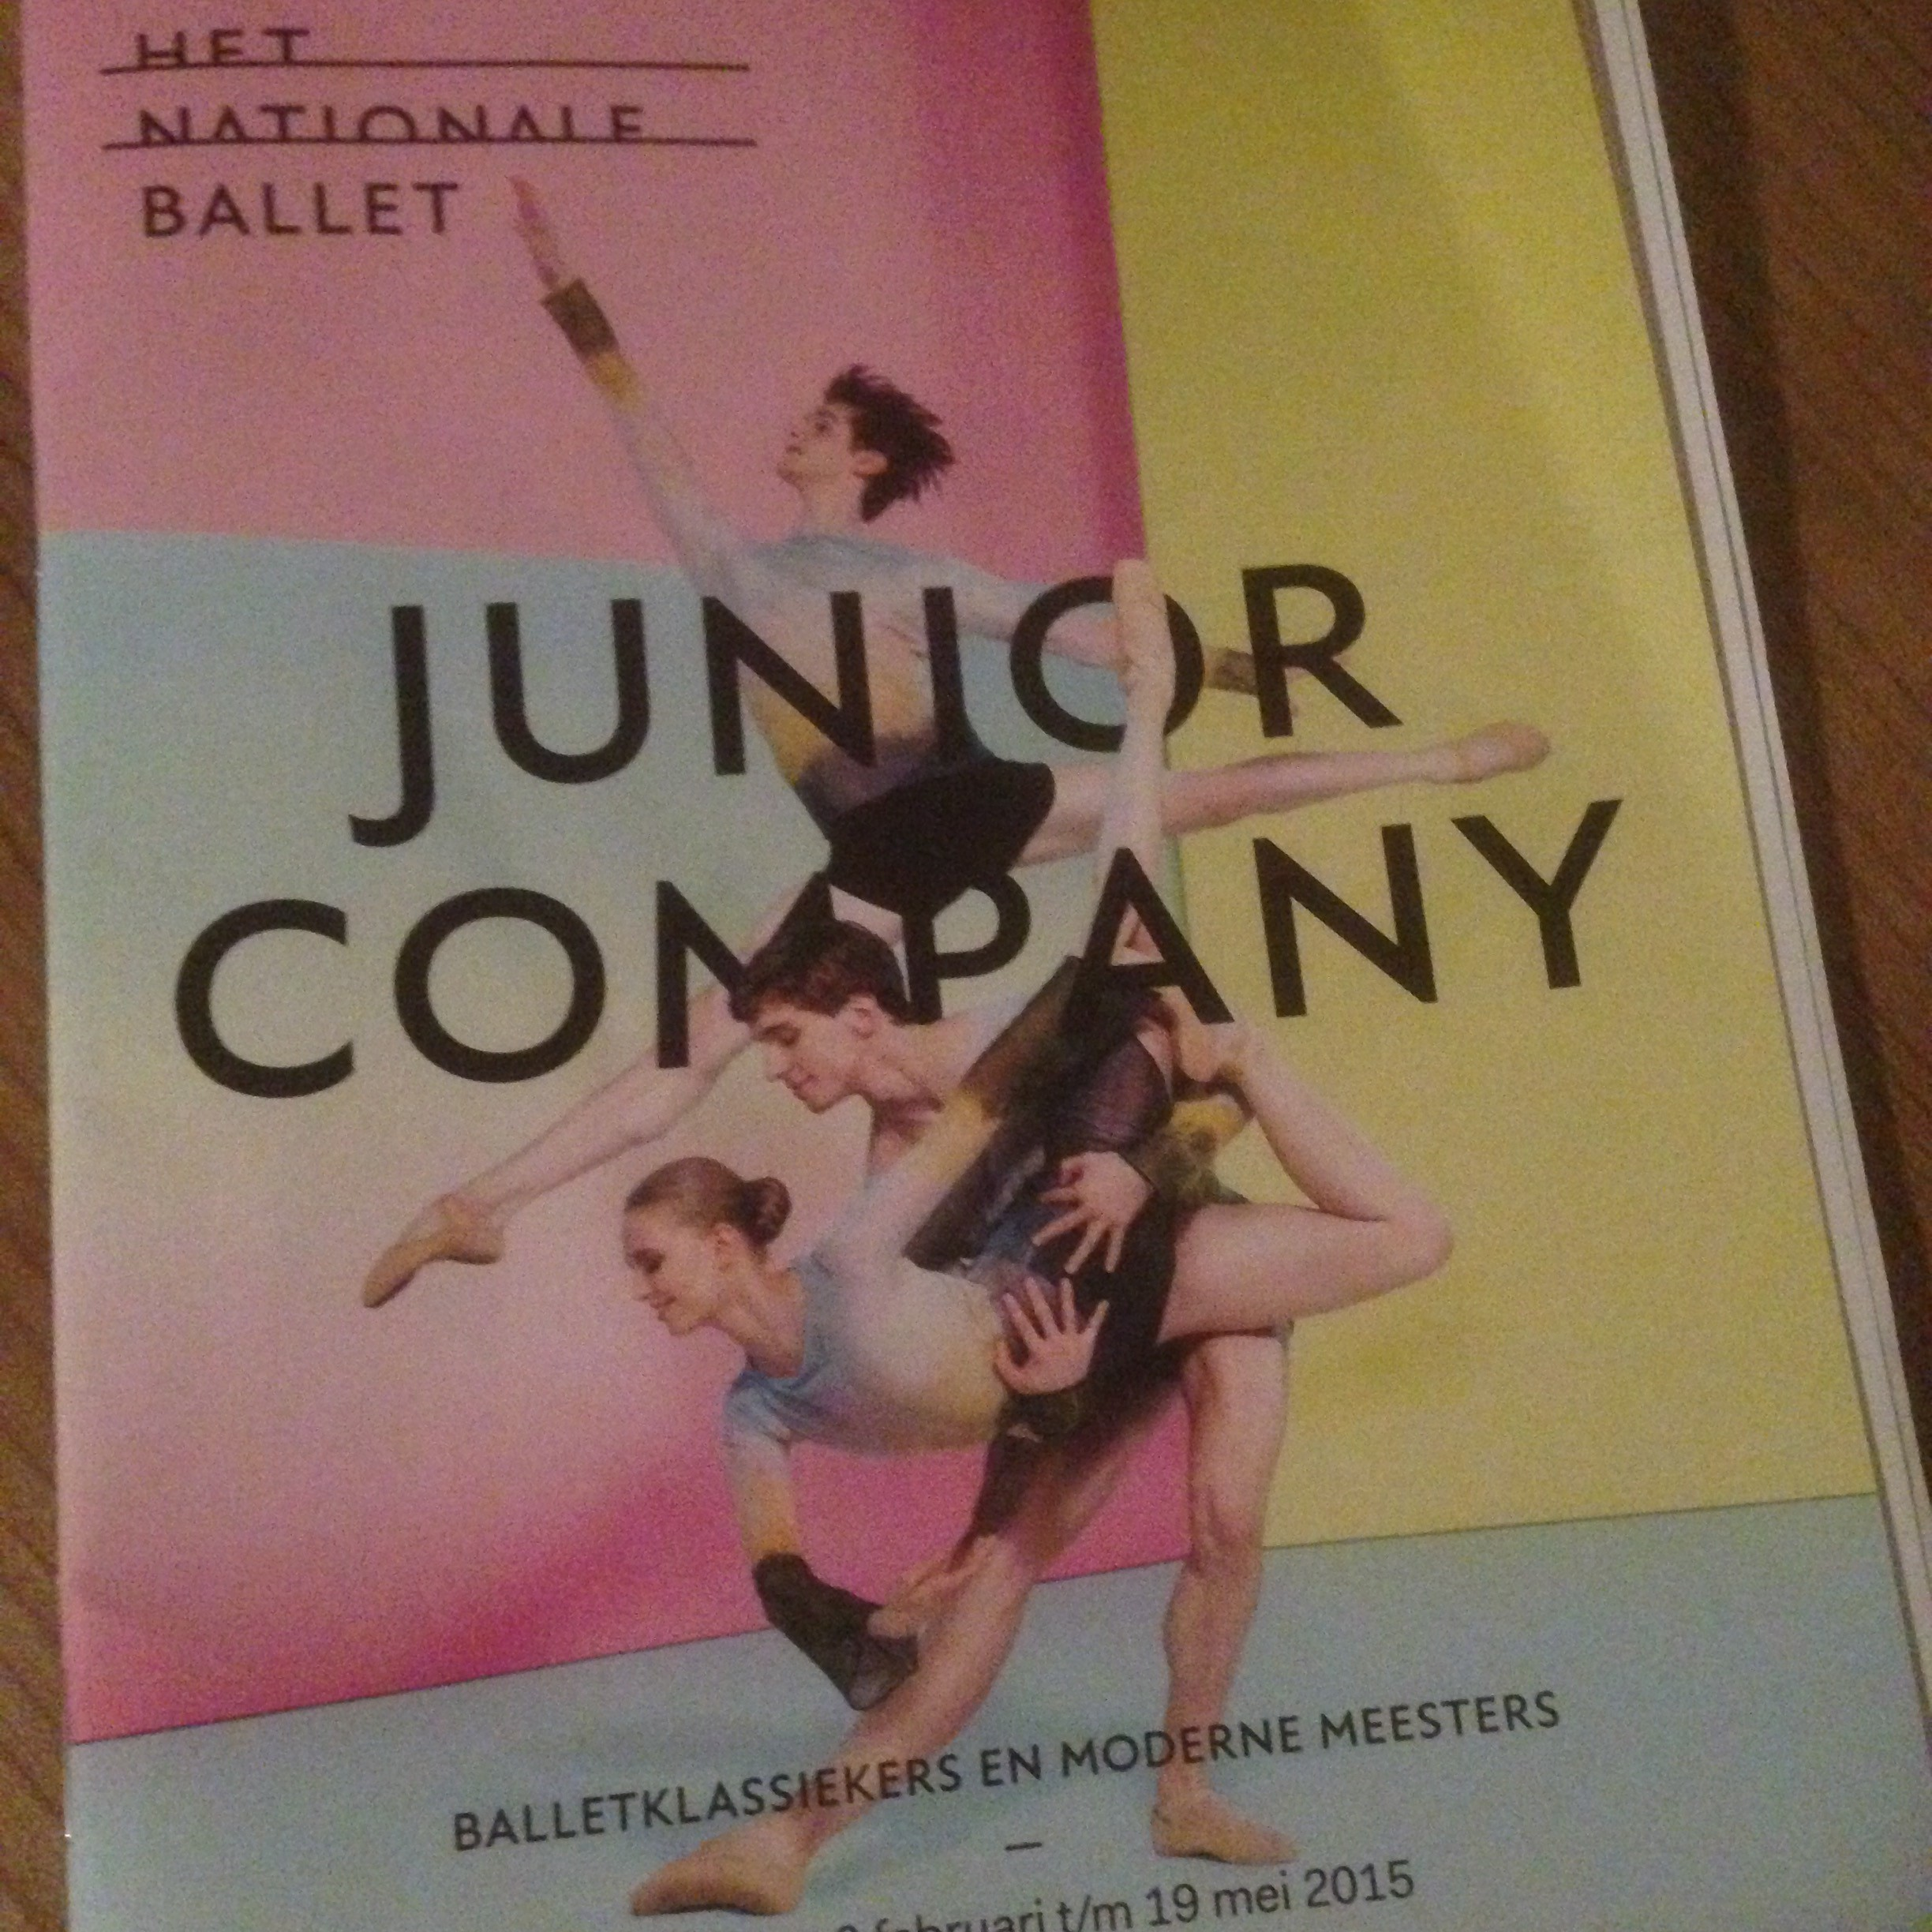 The Junior Company of the National Ballet